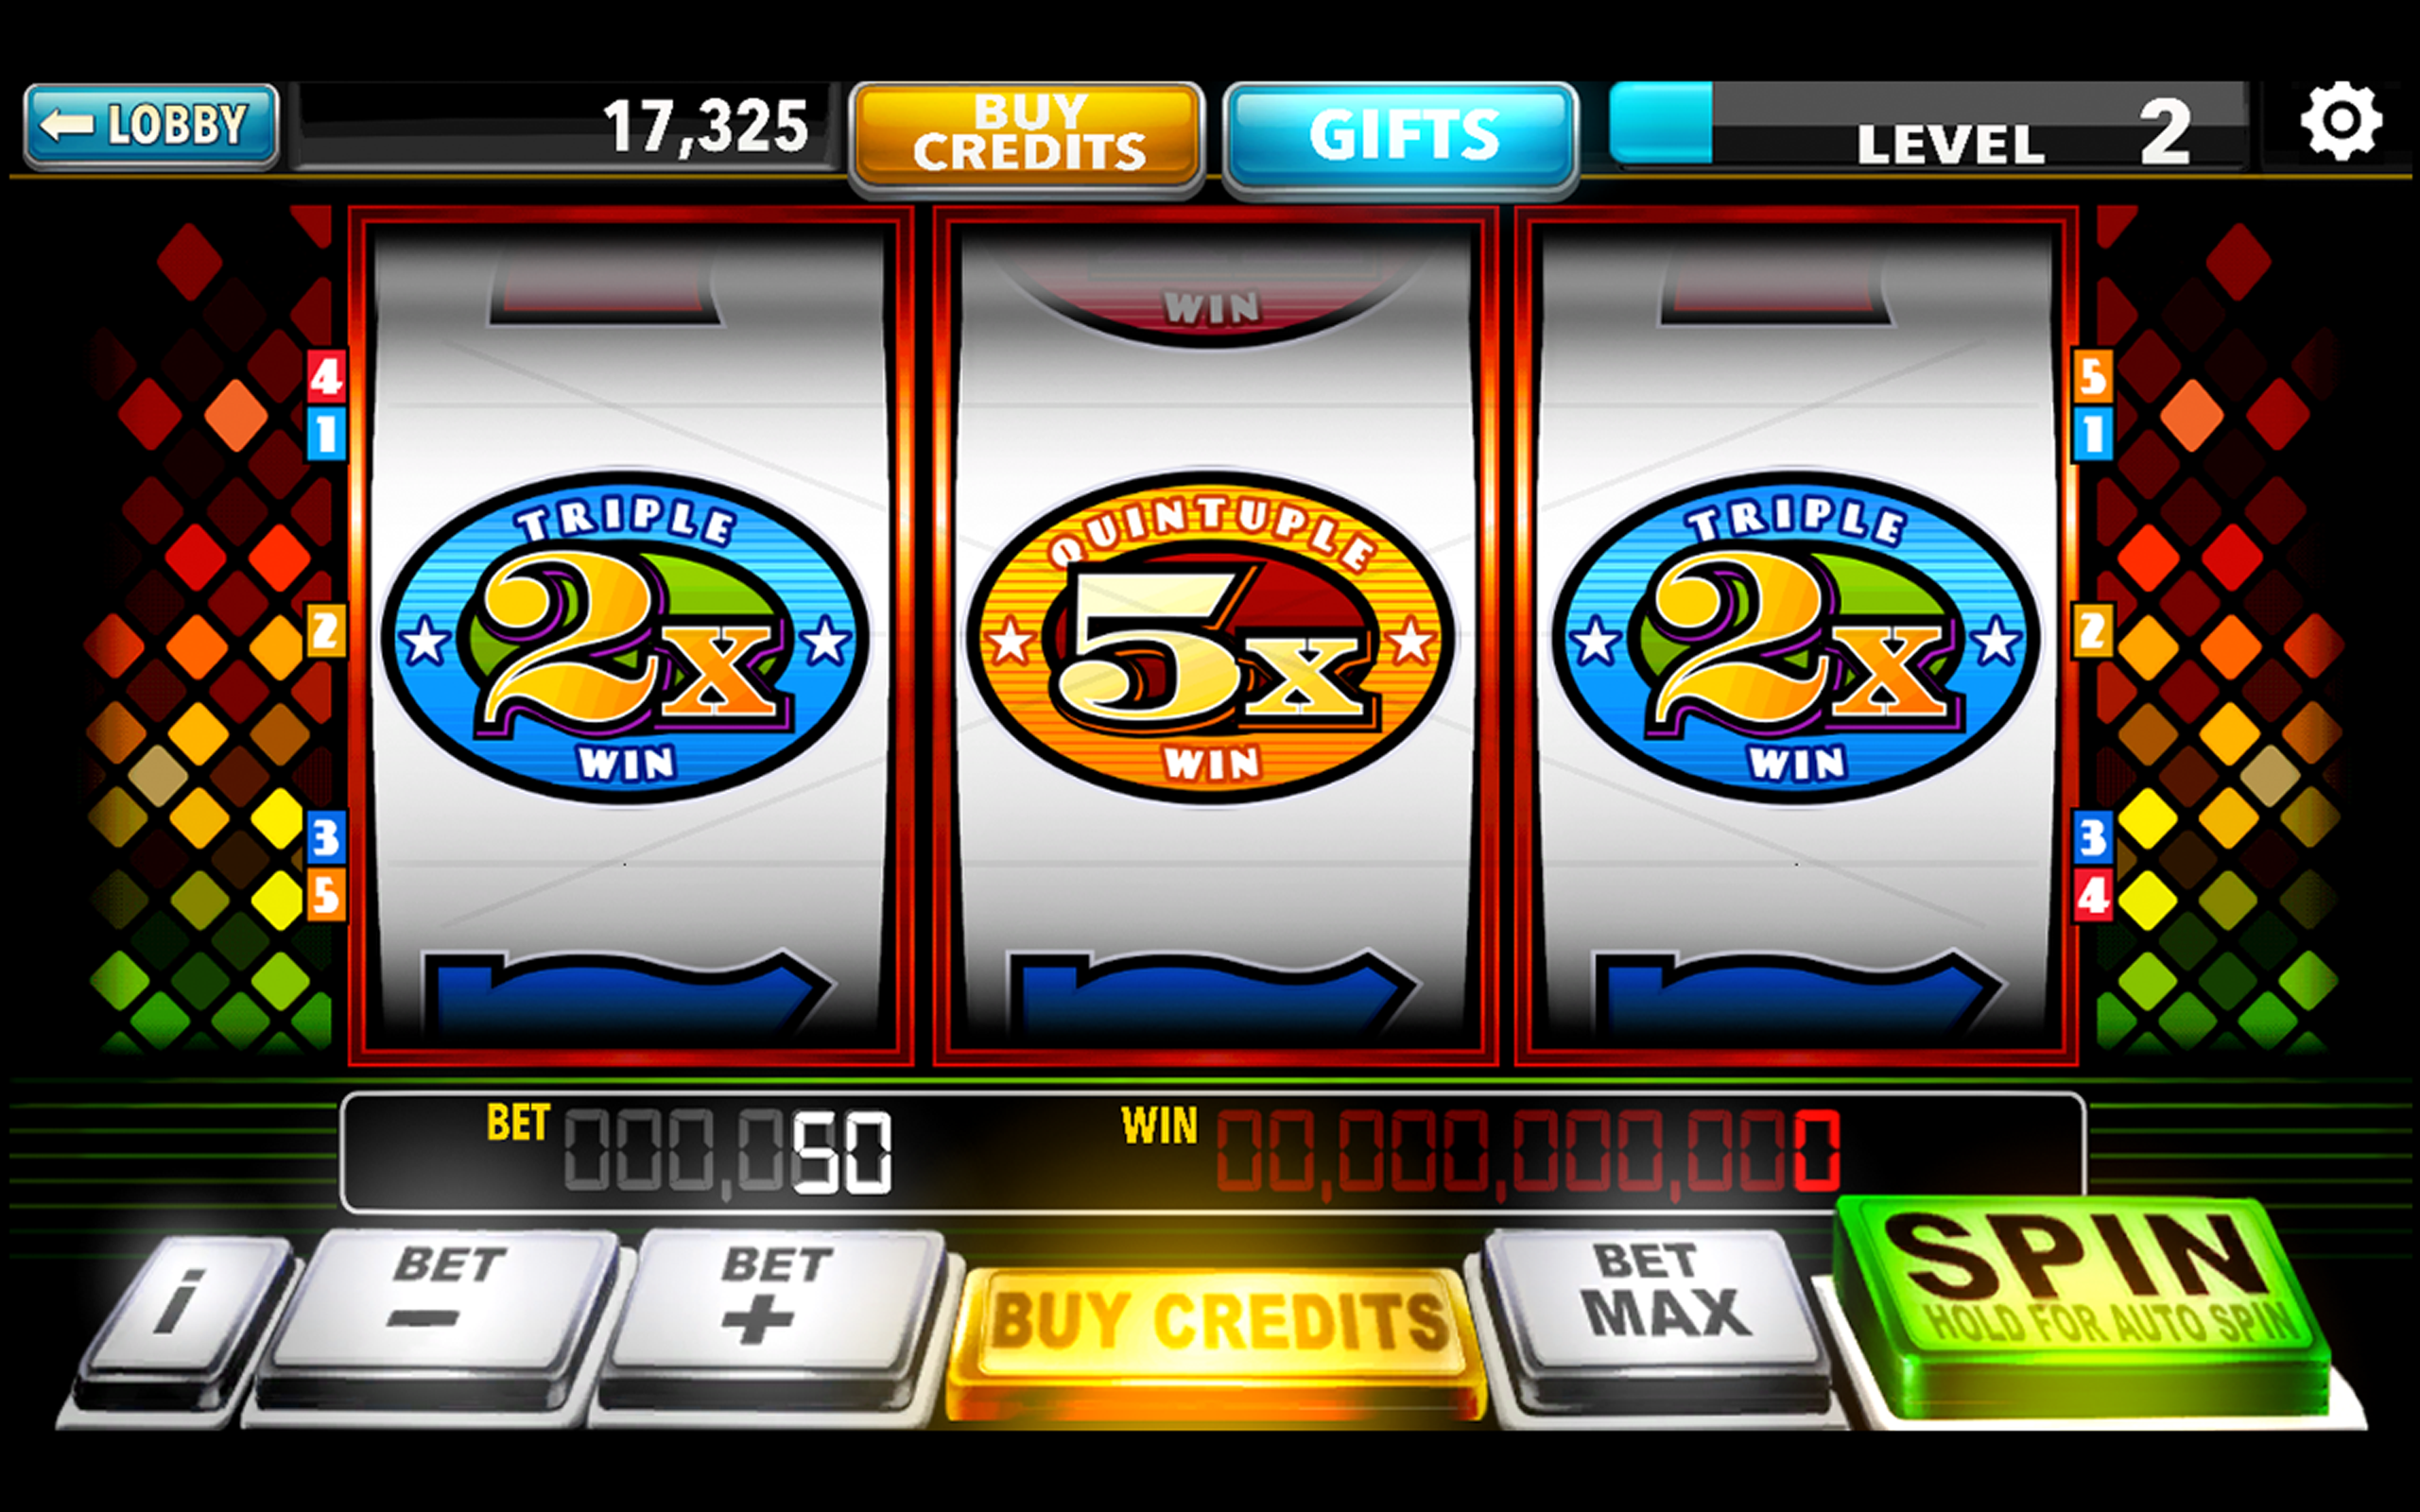 Play Free Slot Machines With Bonus Rounds